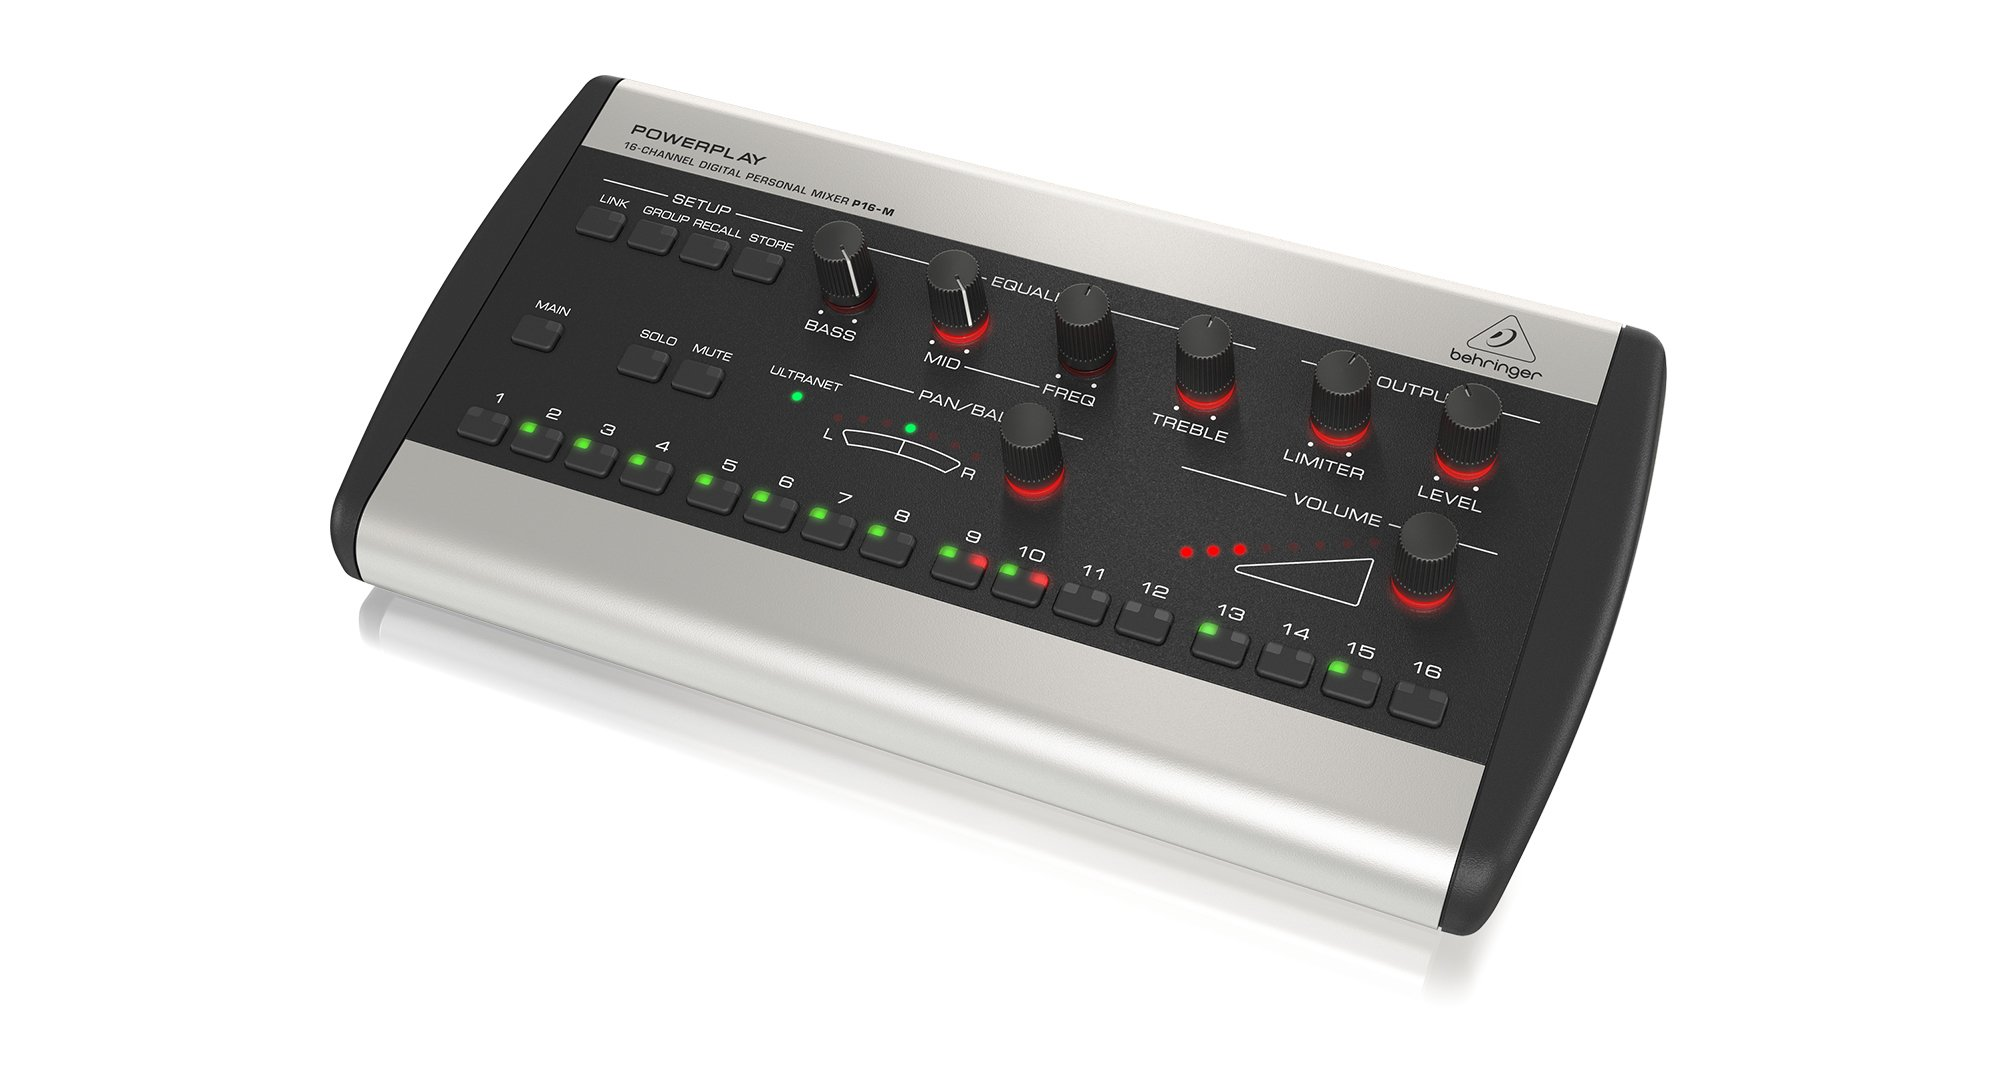 powerplay 16 channel digital personal mixer by behringer p16 m full compass systems. Black Bedroom Furniture Sets. Home Design Ideas